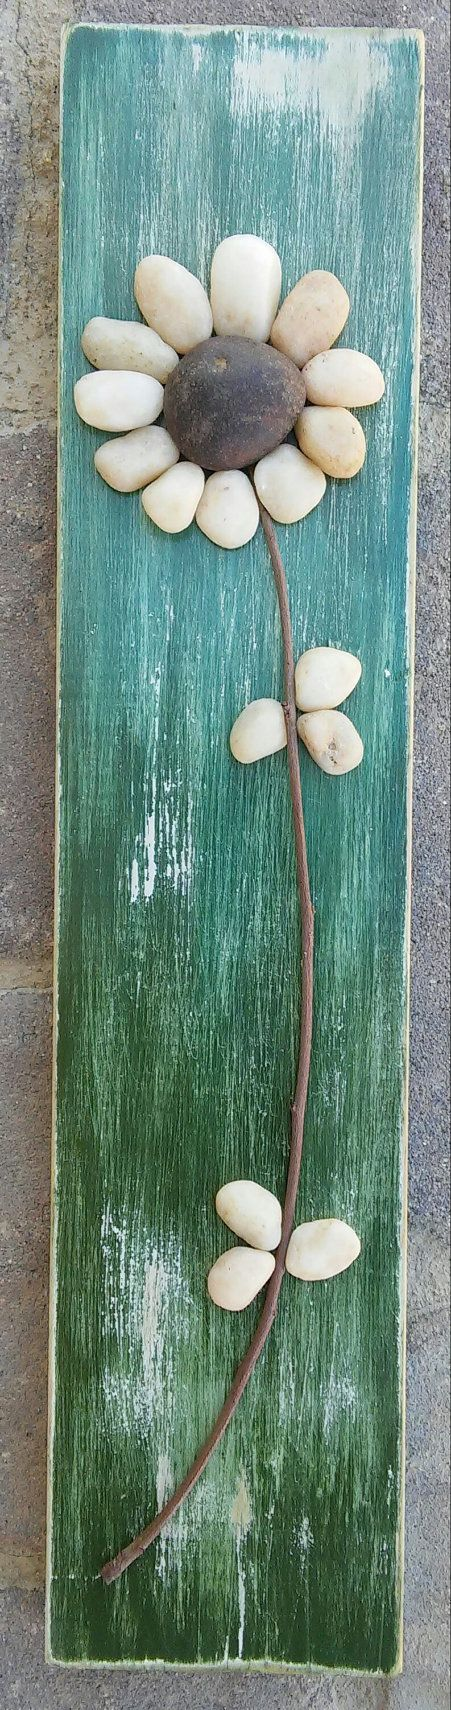 http://www.freecycleusa.com/secret-to-diy-crafting/ Pebble Art depicting a pretty flower (all natural materials including reclaimed wood, pebbles, twigs) 15 1/2 x 3 1/2 #DIYWOODCRAFTS